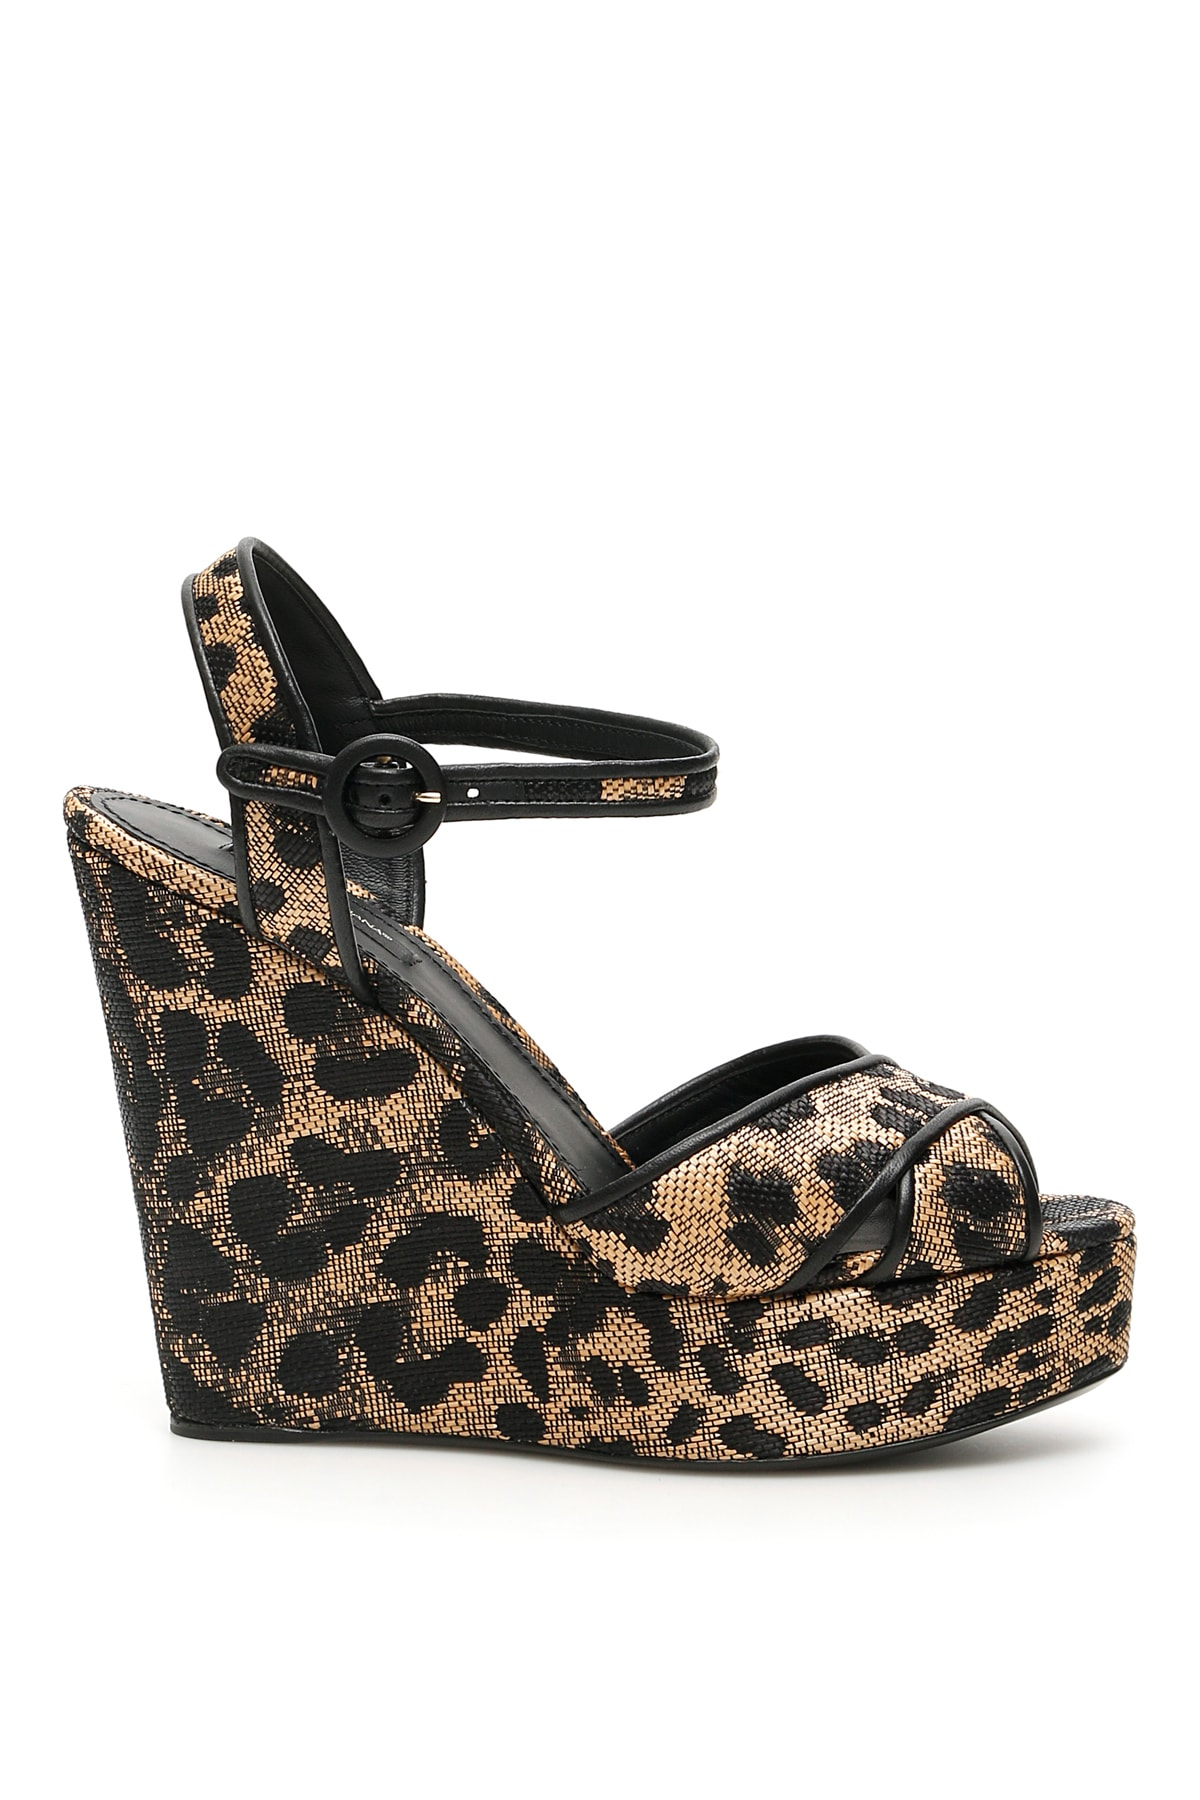 Dolce & Gabbana Bianca Animalier Wedge Sandals